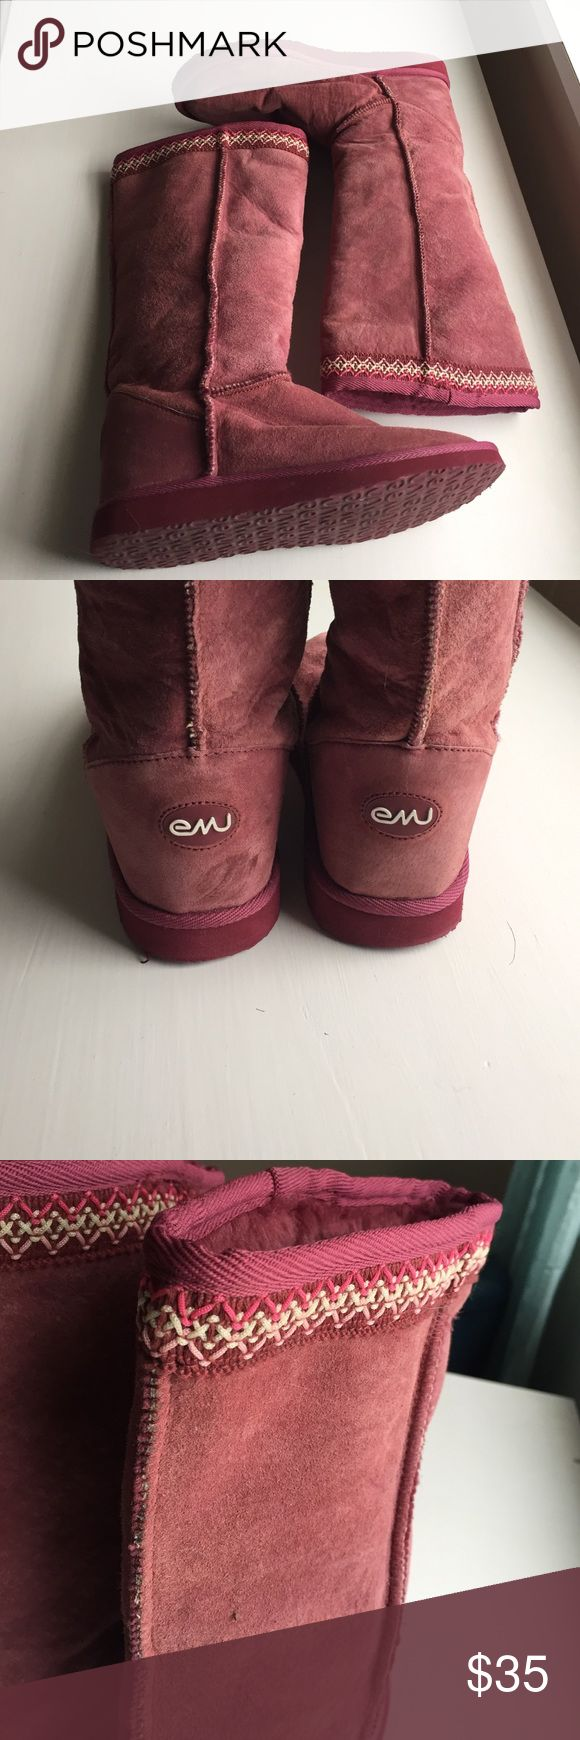 Purple Emu boots Purple Emu boots w/embroidered trim at top of boot - still in great condition worn only a few times Emu Shoes Winter & Rain Boots